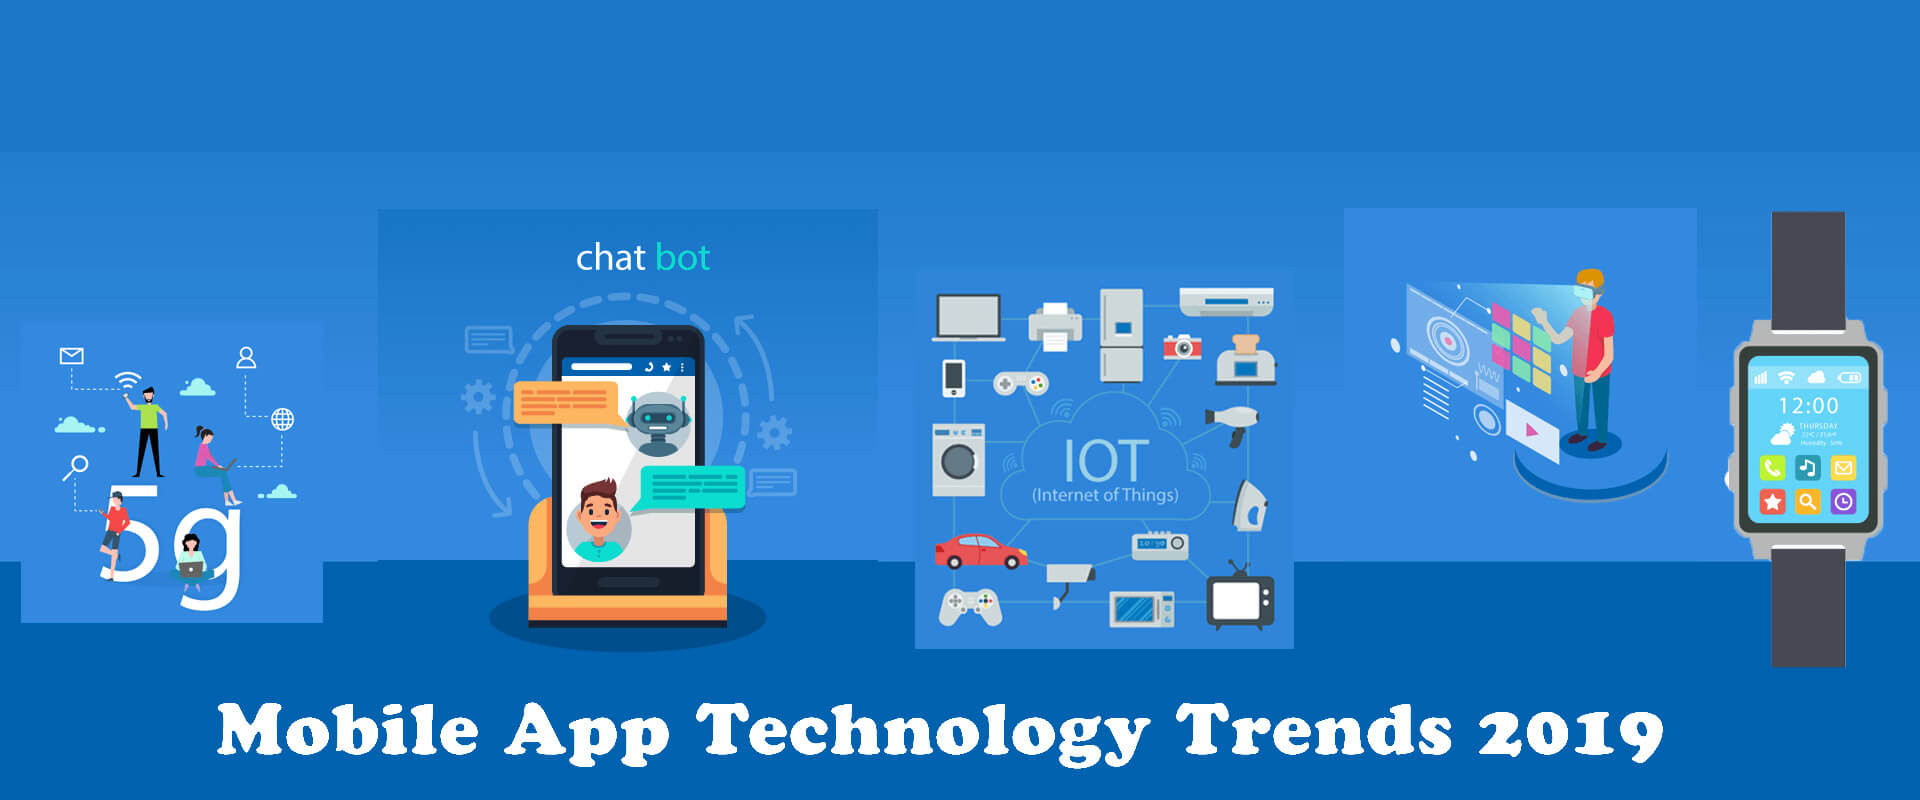 Mobile App Technology Trends